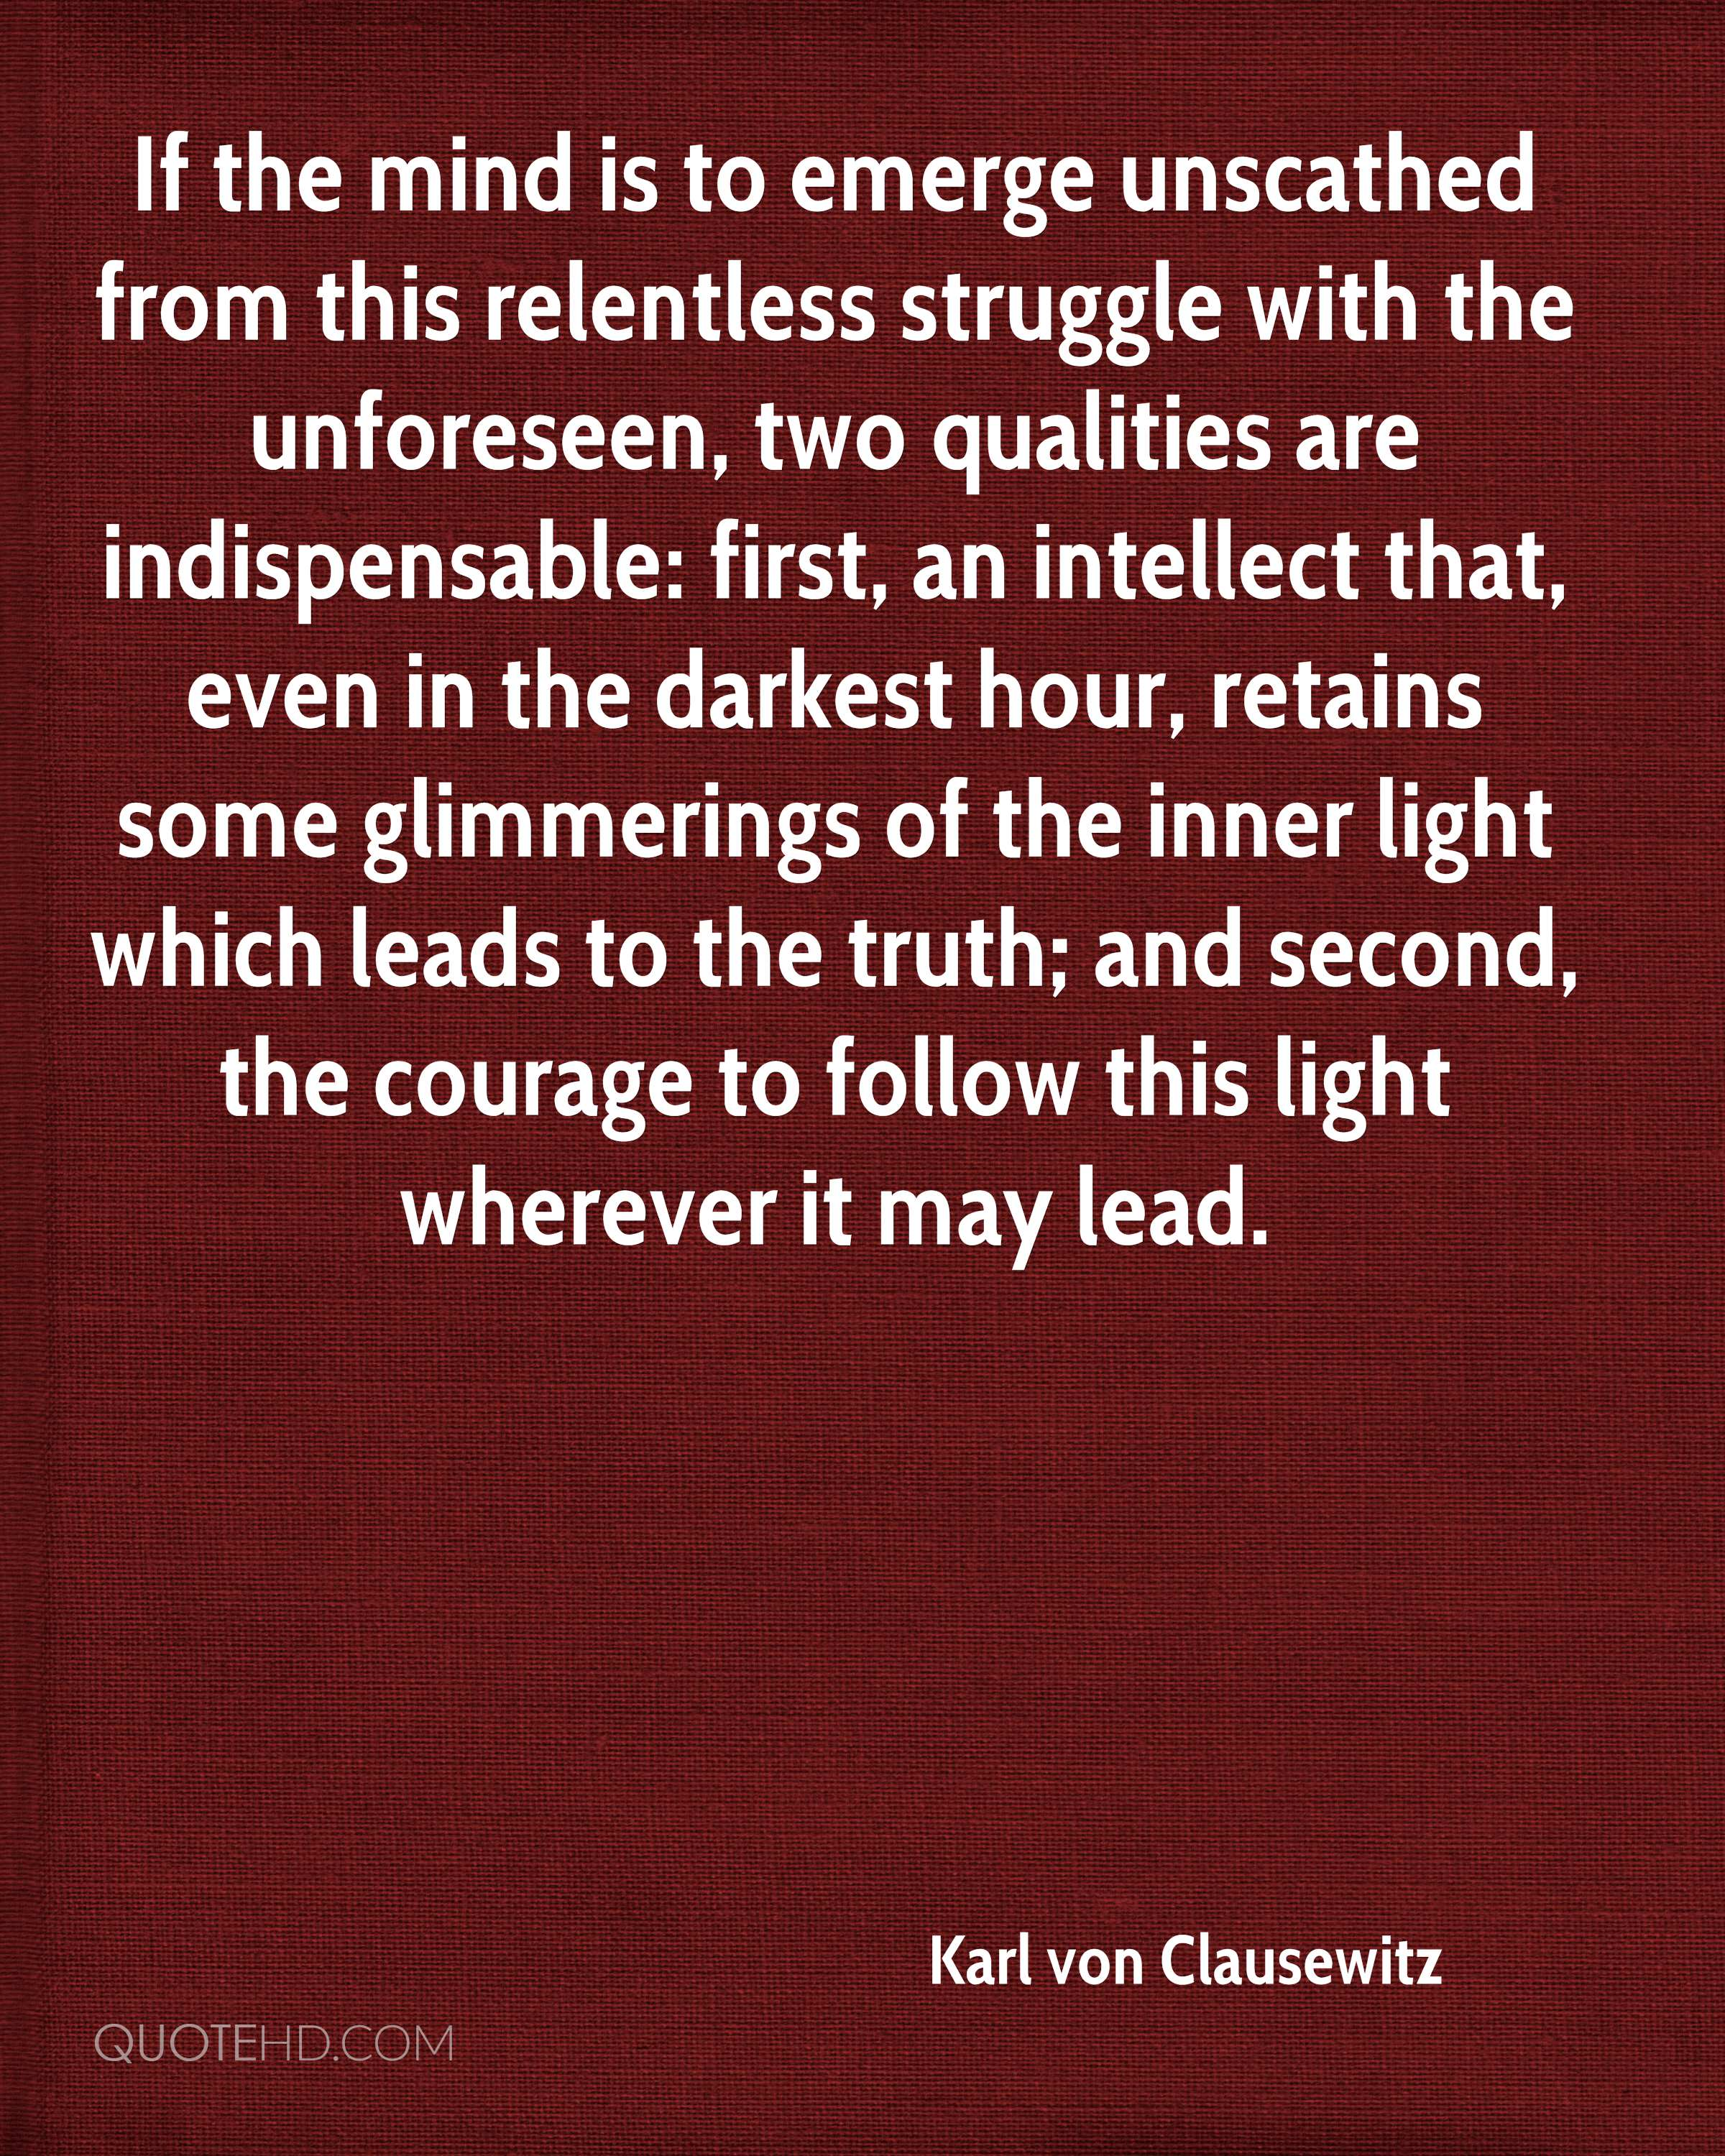 If the mind is to emerge unscathed from this relentless struggle with the unforeseen, two qualities are indispensable: first, an intellect that, even in the darkest hour, retains some glimmerings of the inner light which leads to the truth; and second, the courage to follow this light wherever it may lead.